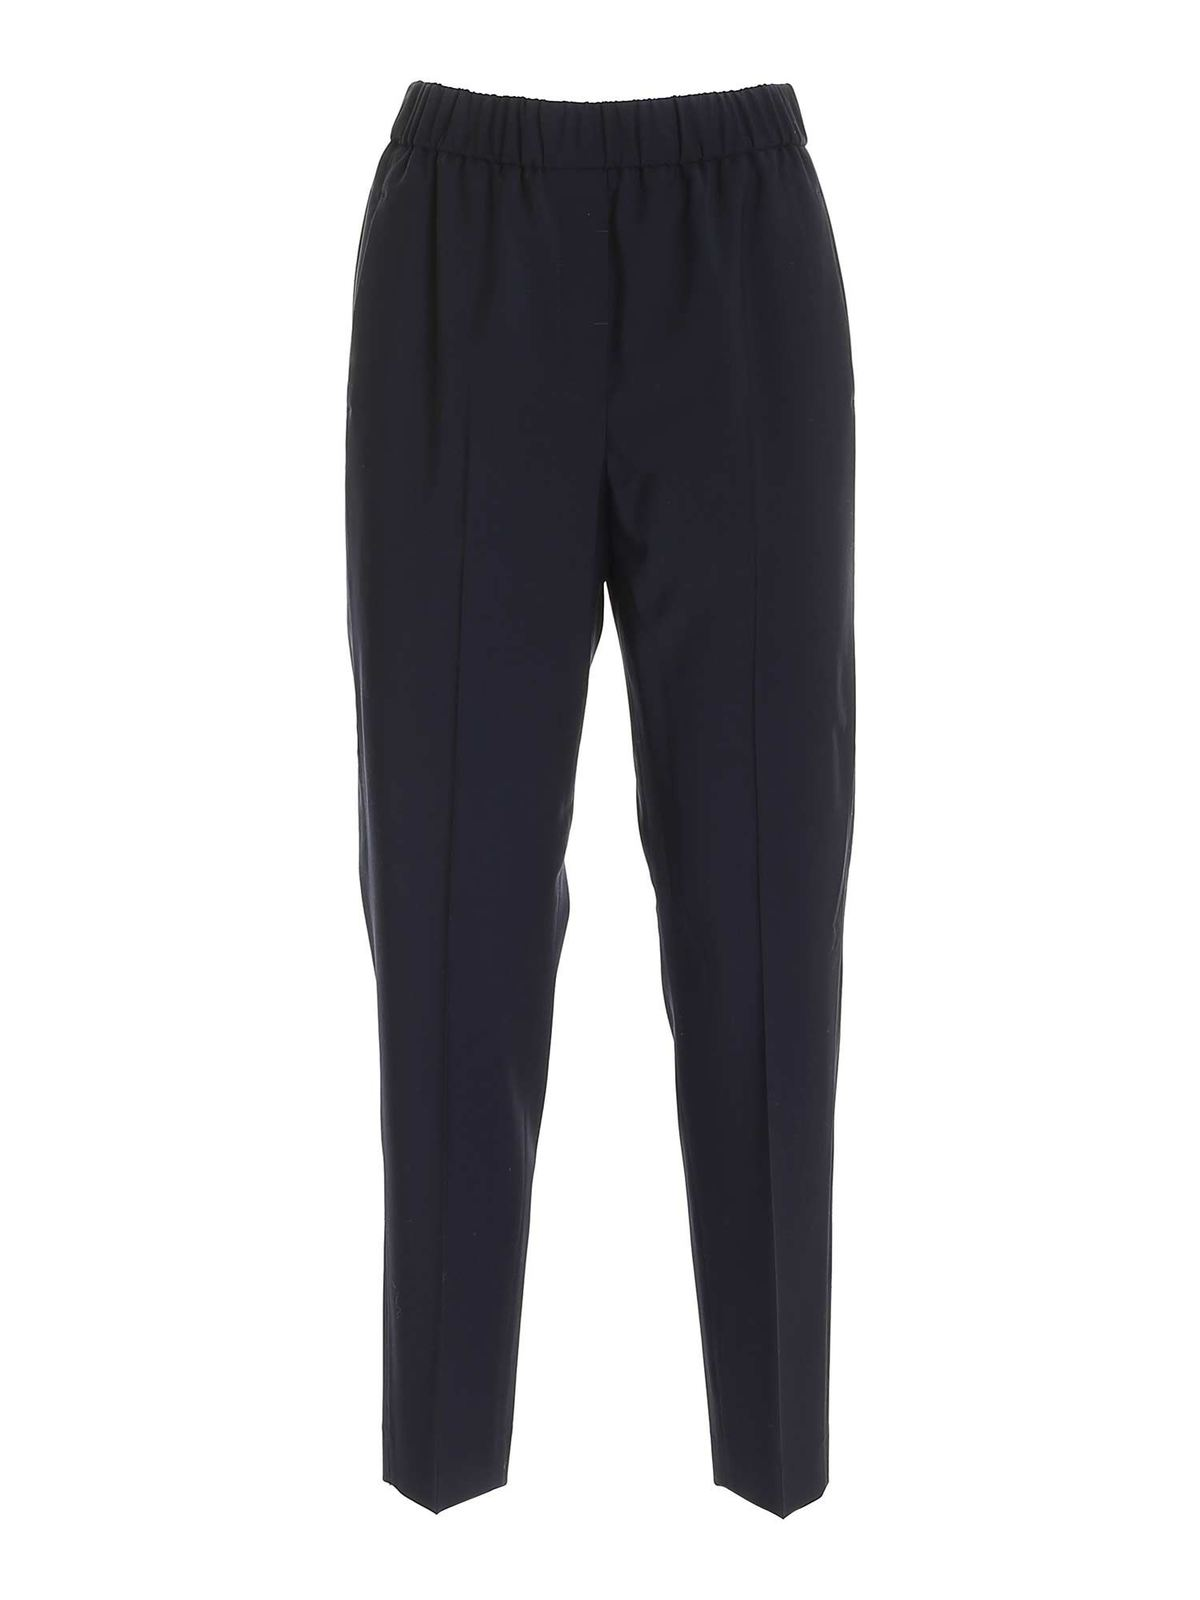 Peserico HIGH WAISTED PANTS IN DARK BLUE